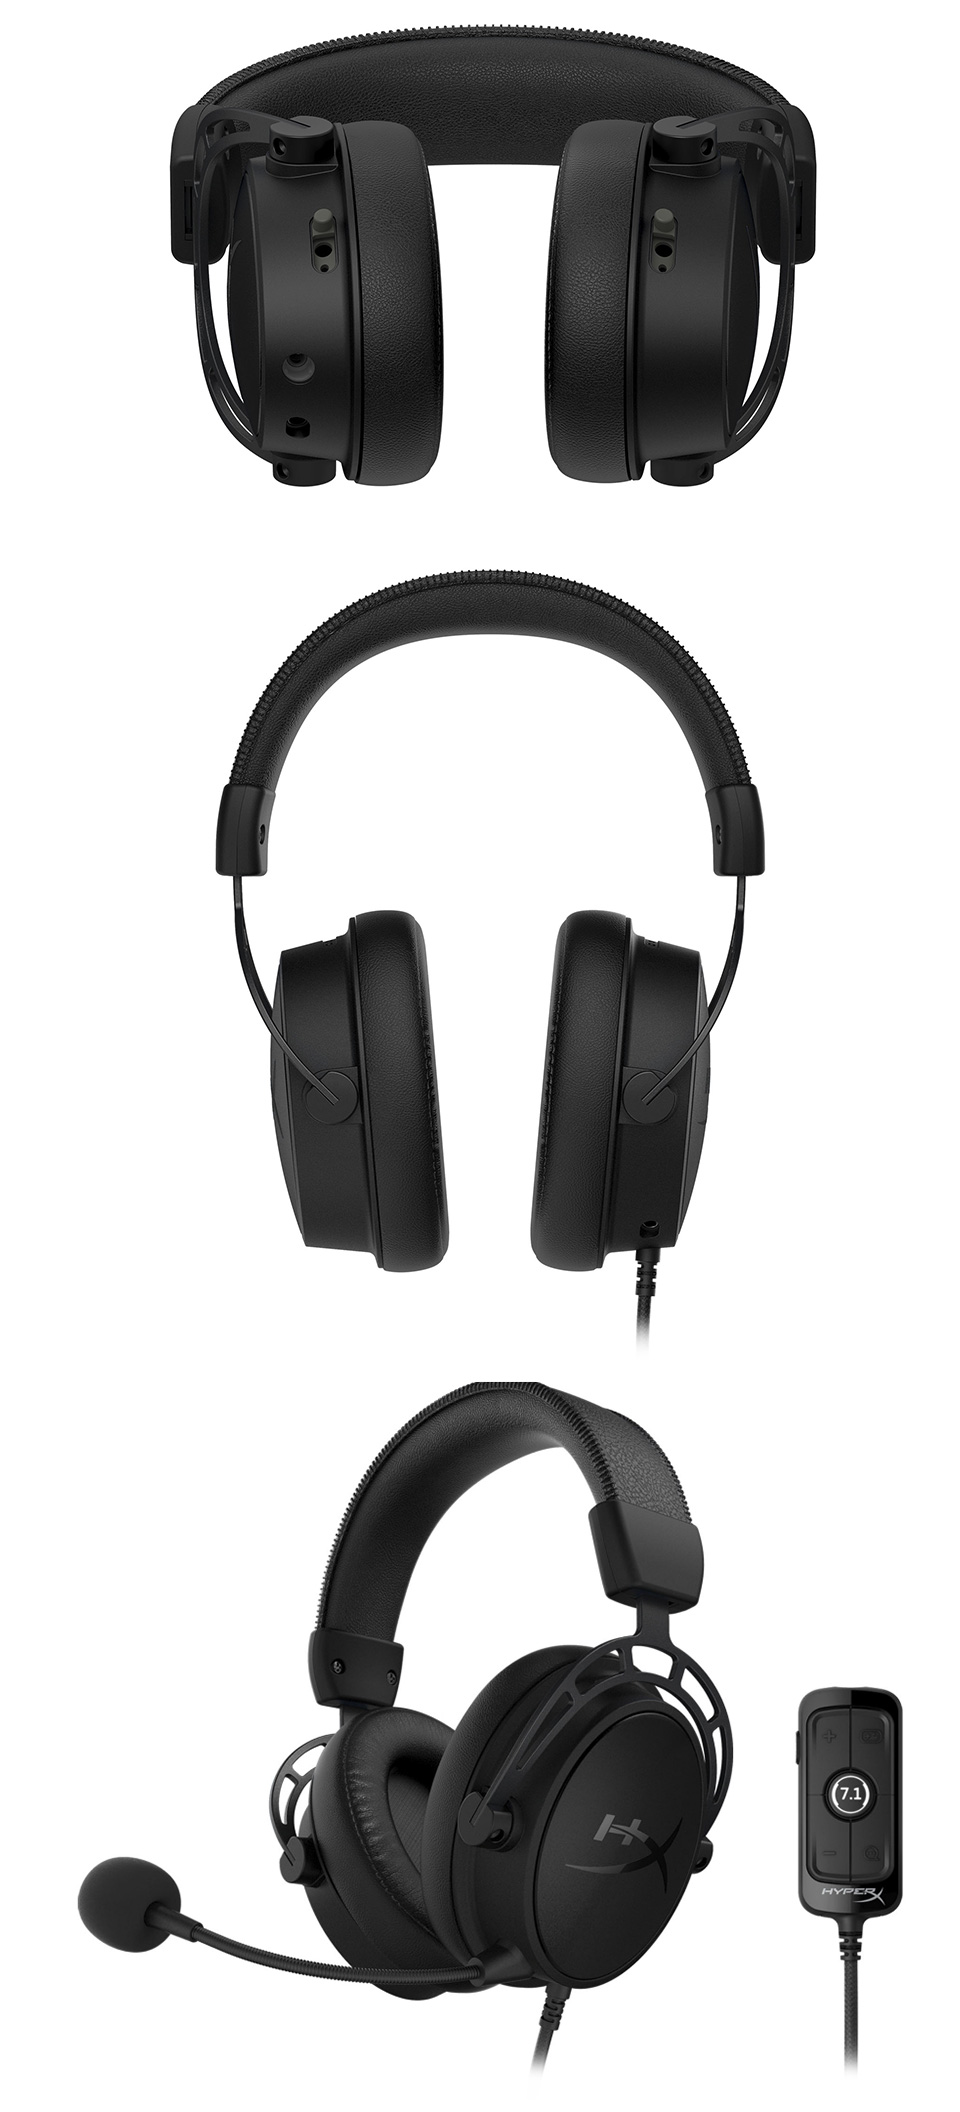 HyperX Alpha S Gaming Headset Black product